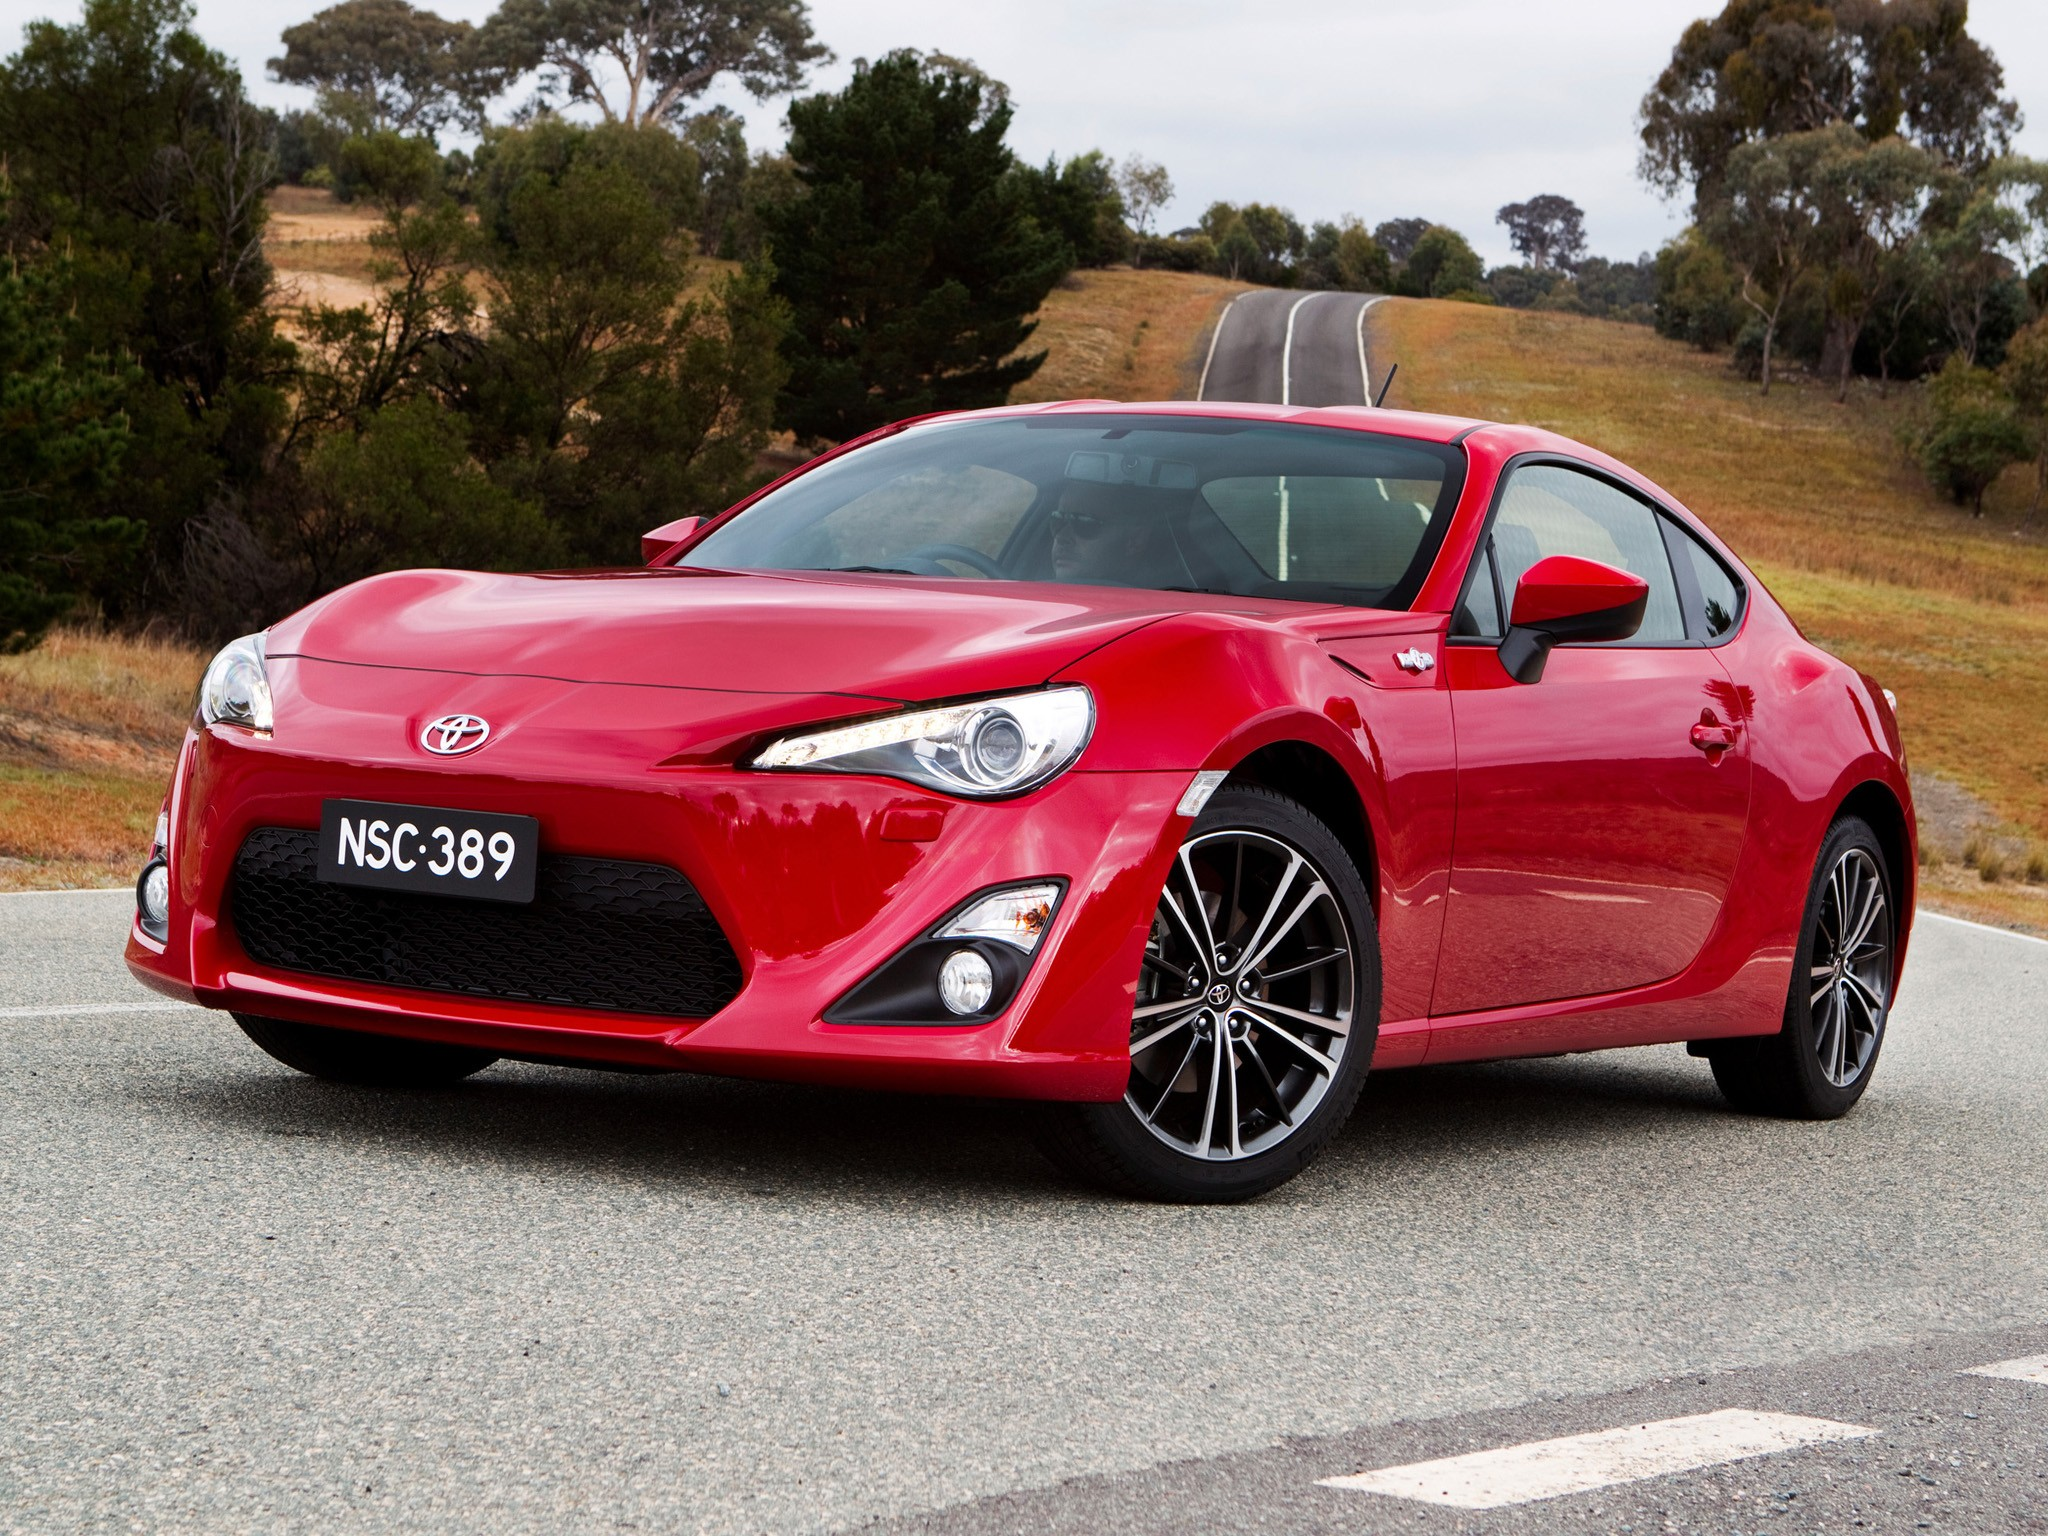 toyota gt 86 specs 2012 2013 2014 2015 2016 autoevolution. Black Bedroom Furniture Sets. Home Design Ideas